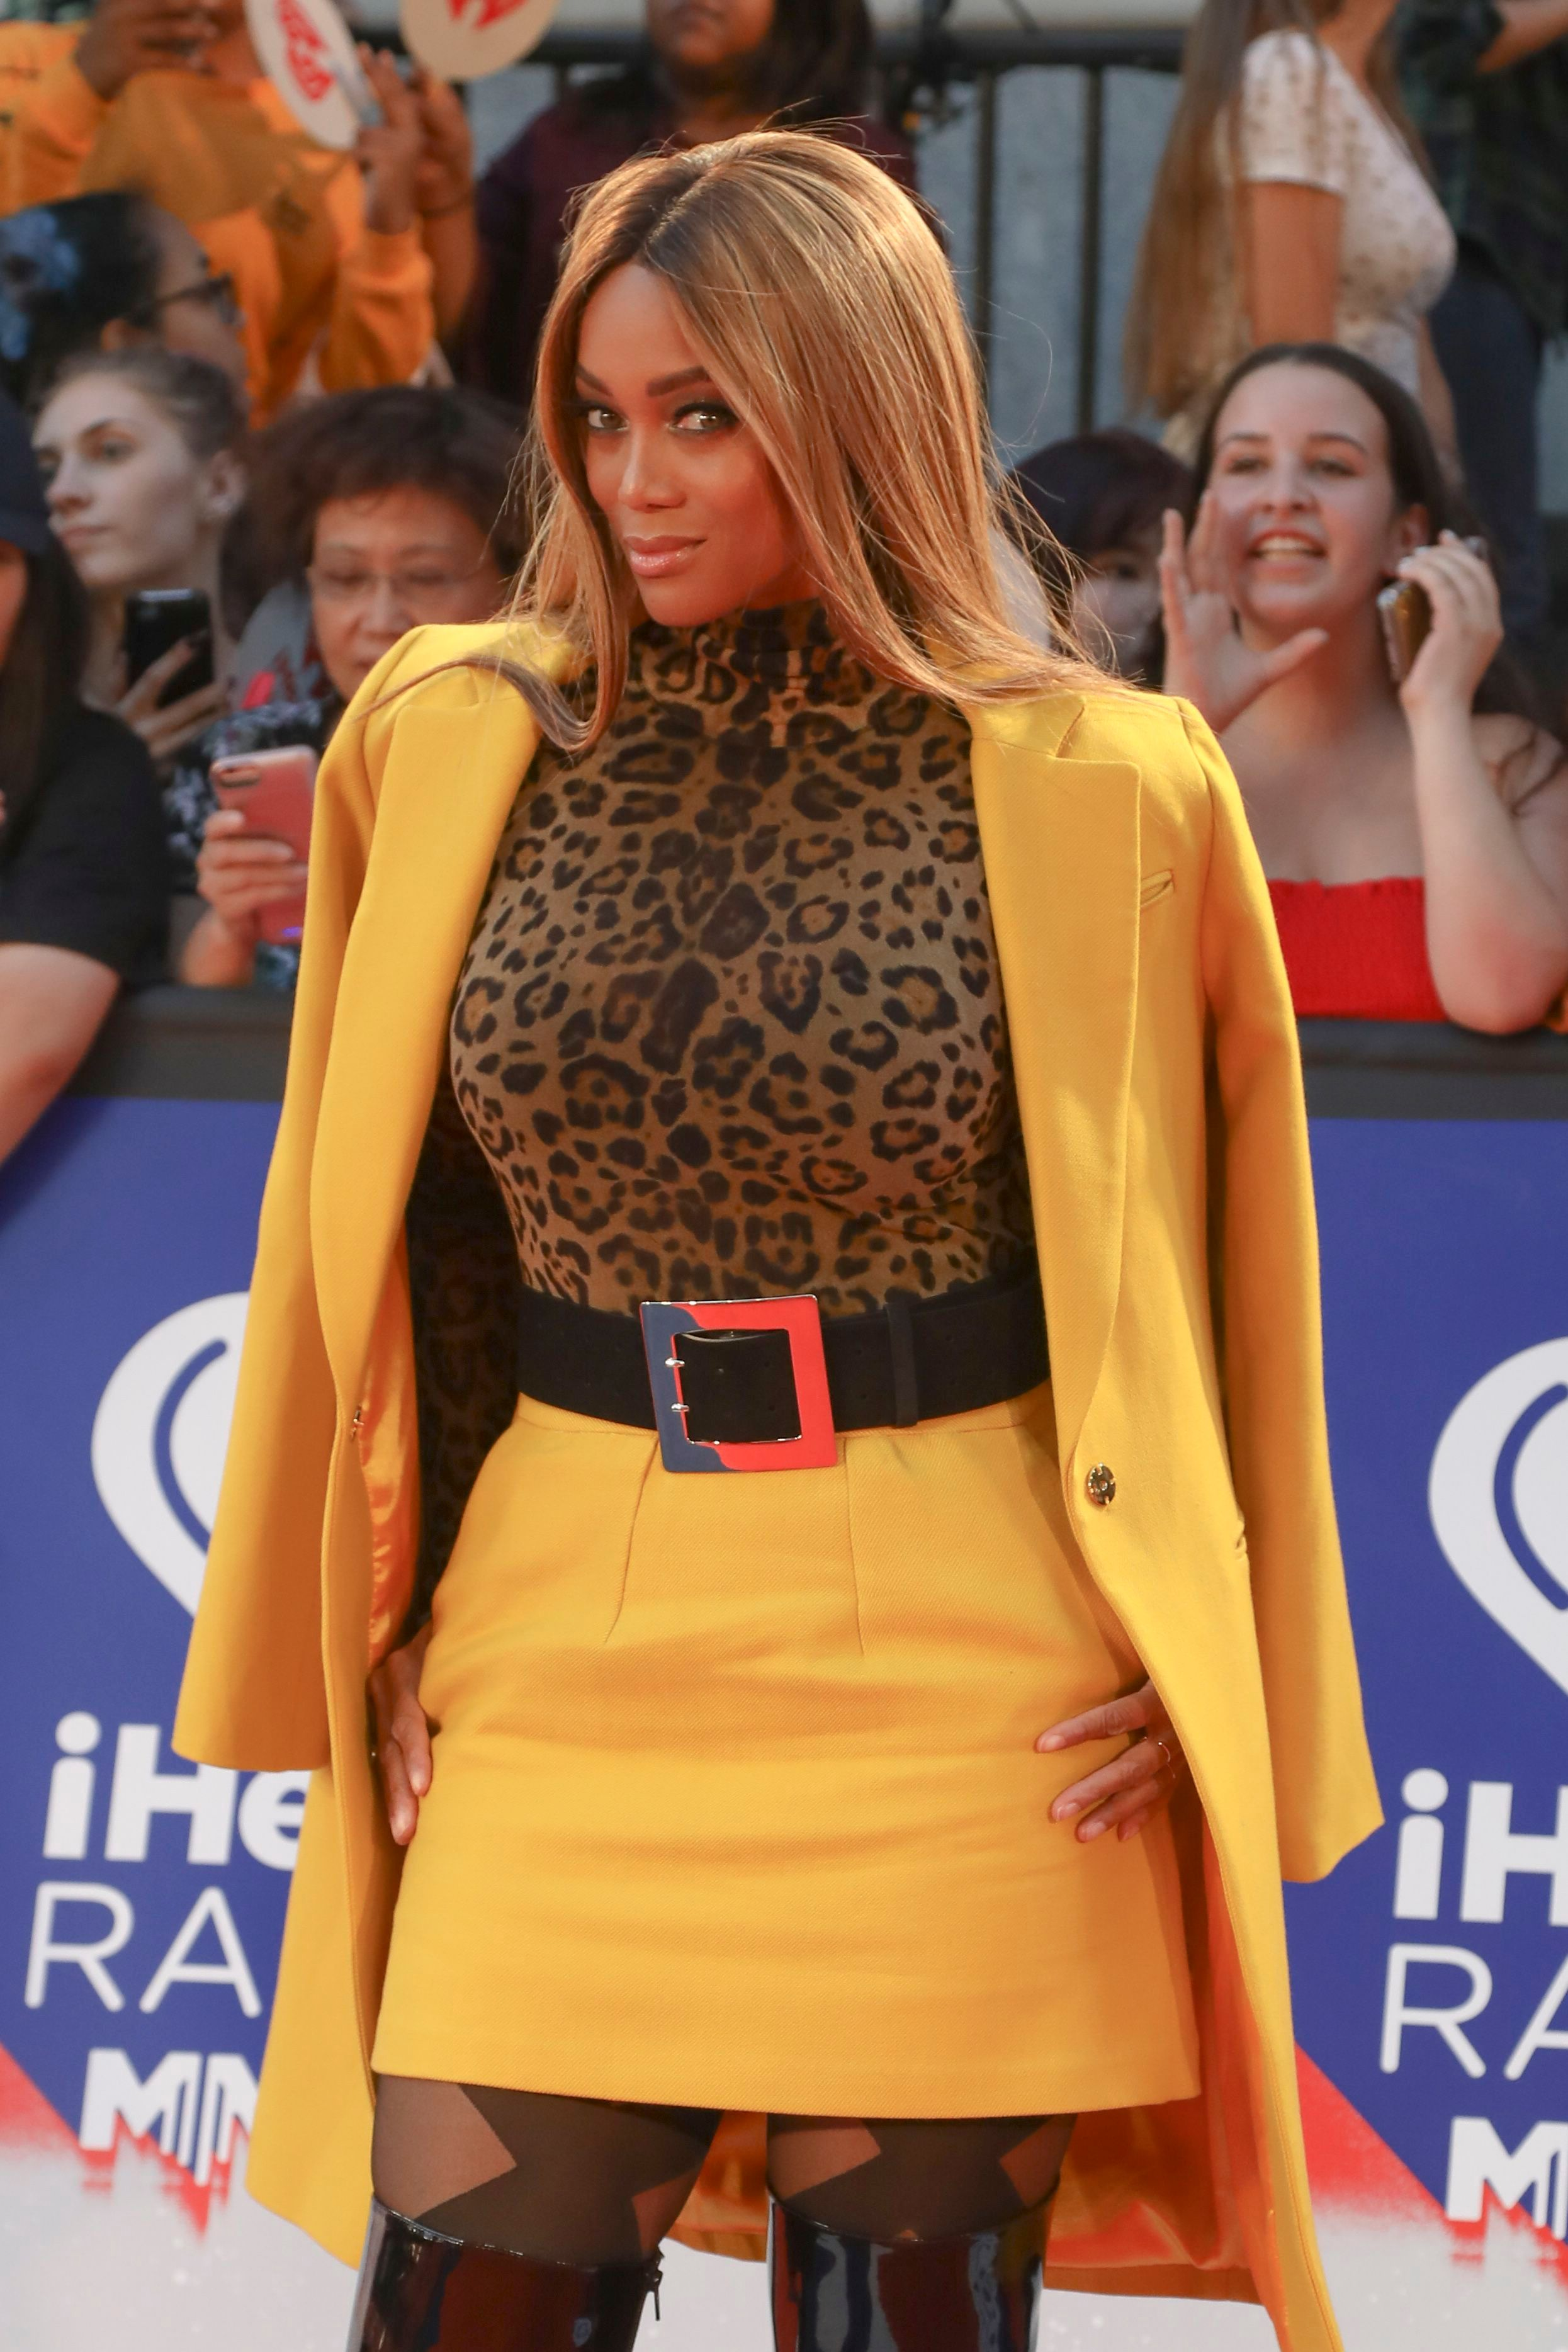 Tyra Banks Calls Out Fashion Industry In New Modelland Promo